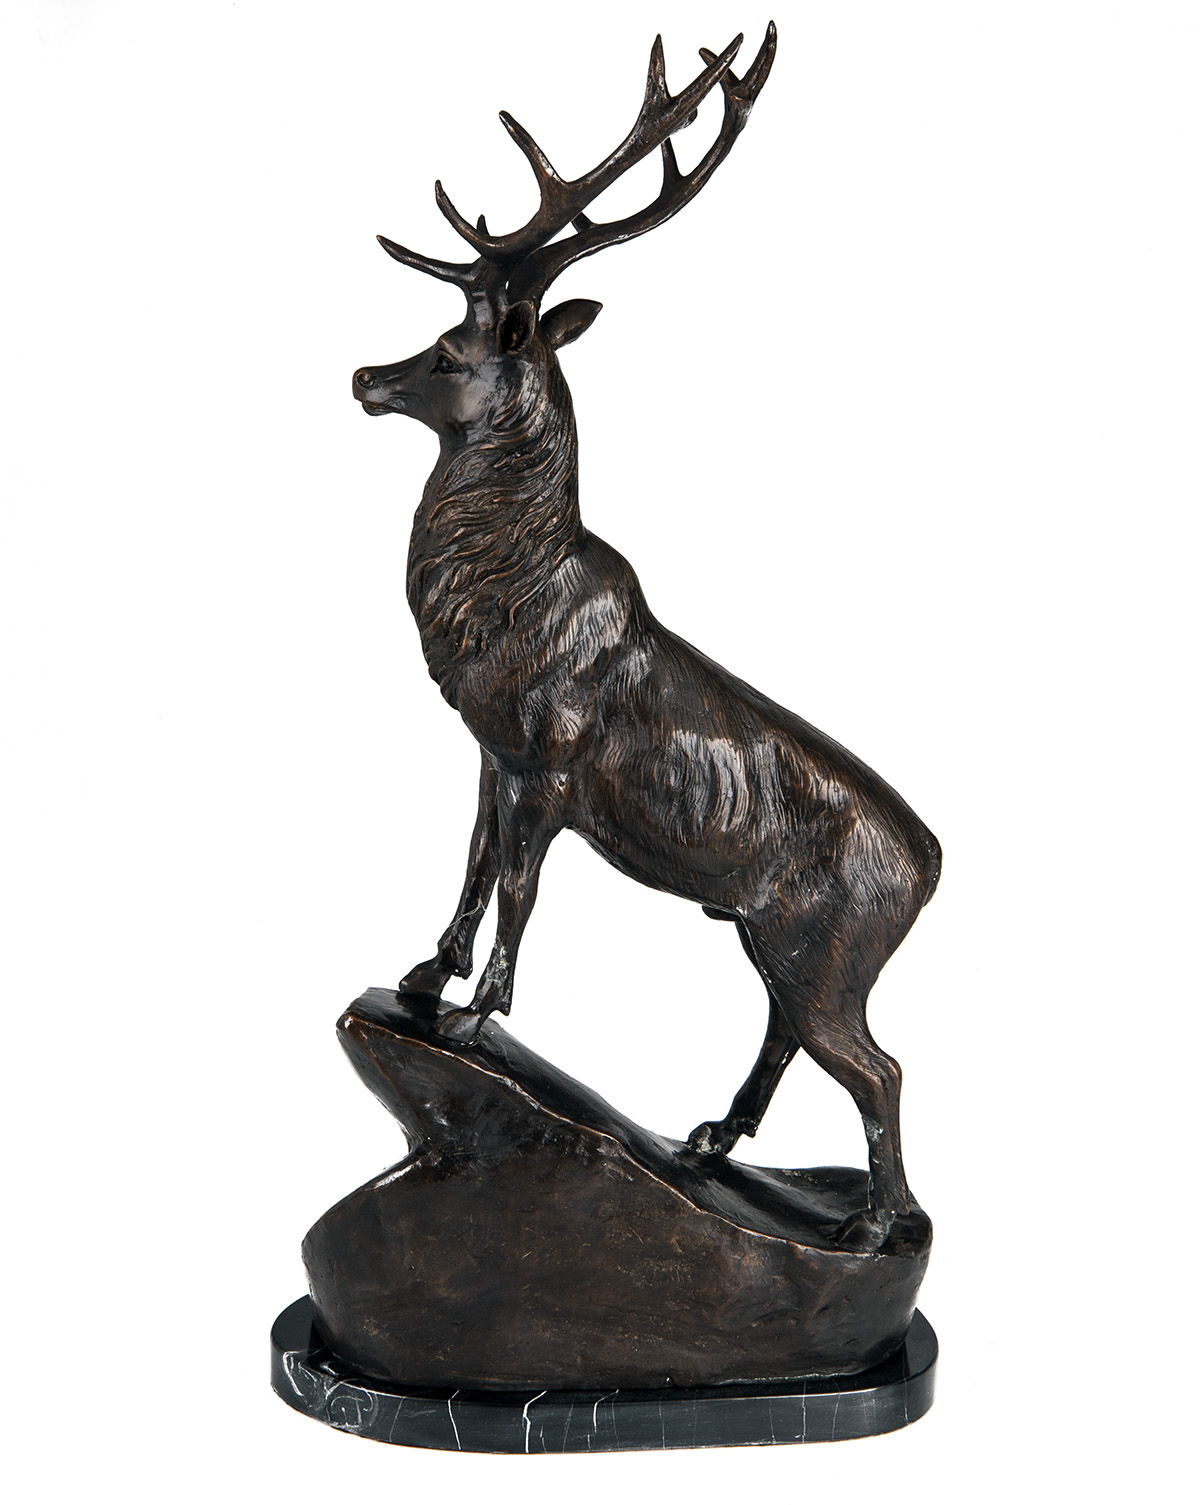 Lot 30 - A PAIR OF BRONZE STAGS SIGNED BY T. MAIGNIERY, each standing on a rocky prominence and mounted on